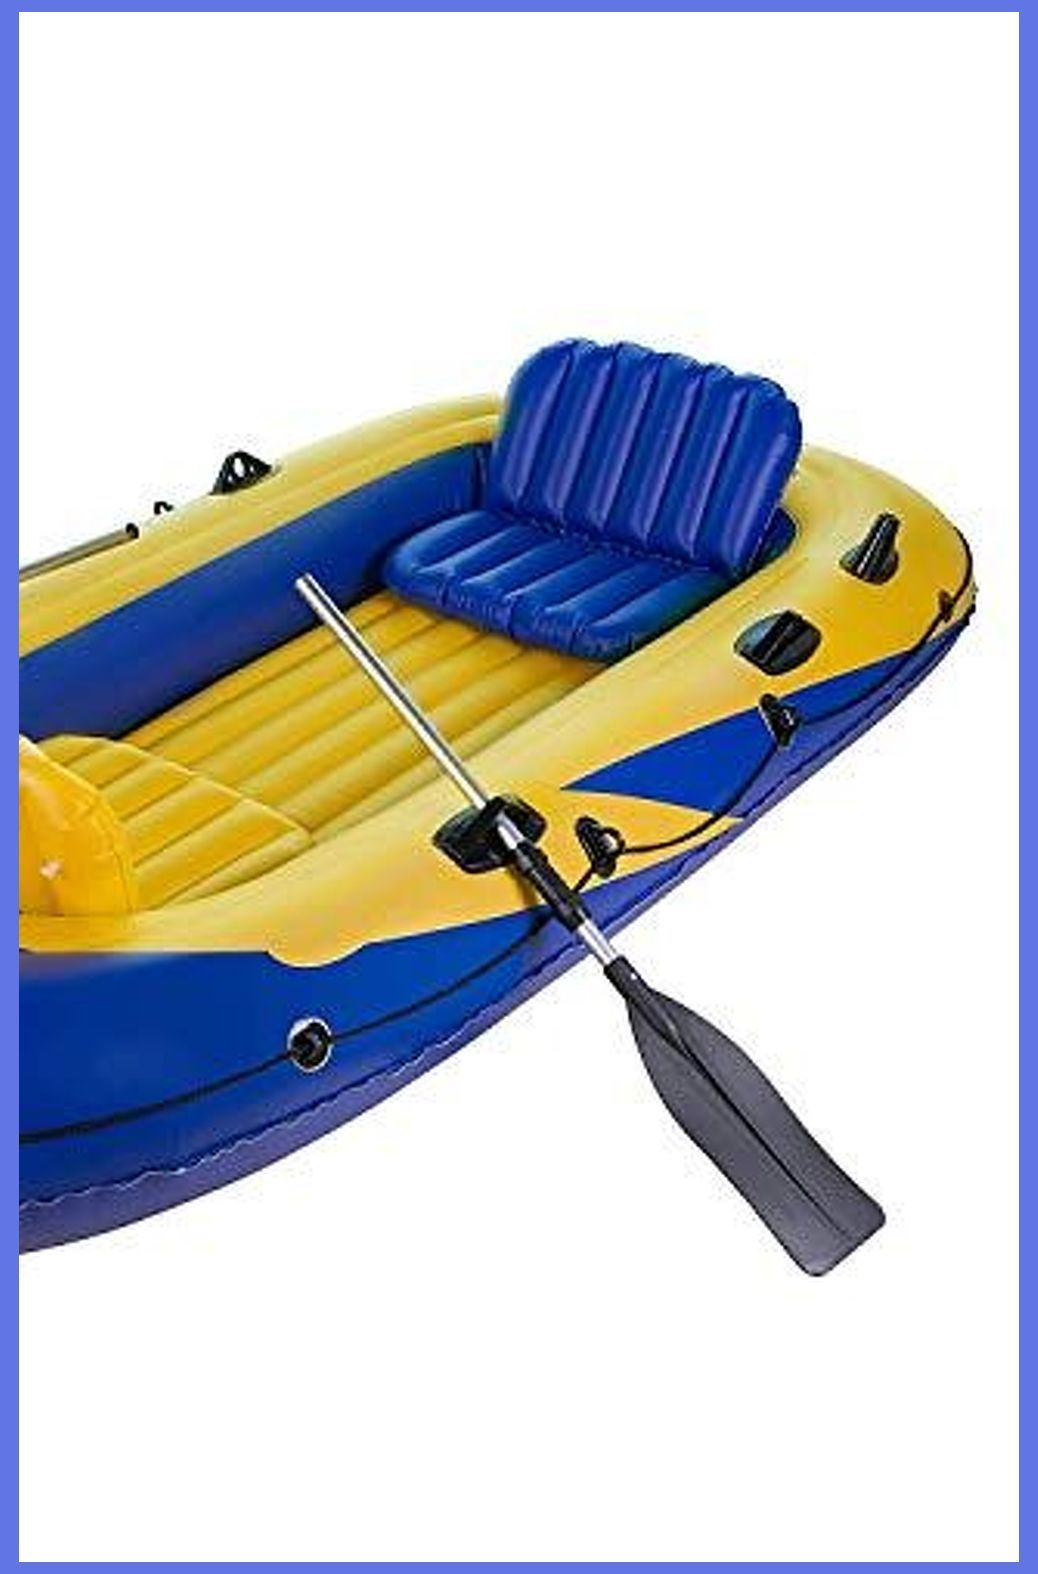 Inflatable Fishing Kayak 2 Person Sable 4 Person Inflatable Boat Set With Aluminum Oars And In 2020 Inflatable Fishing Kayak Inflatable Kayak Kayaking Gear